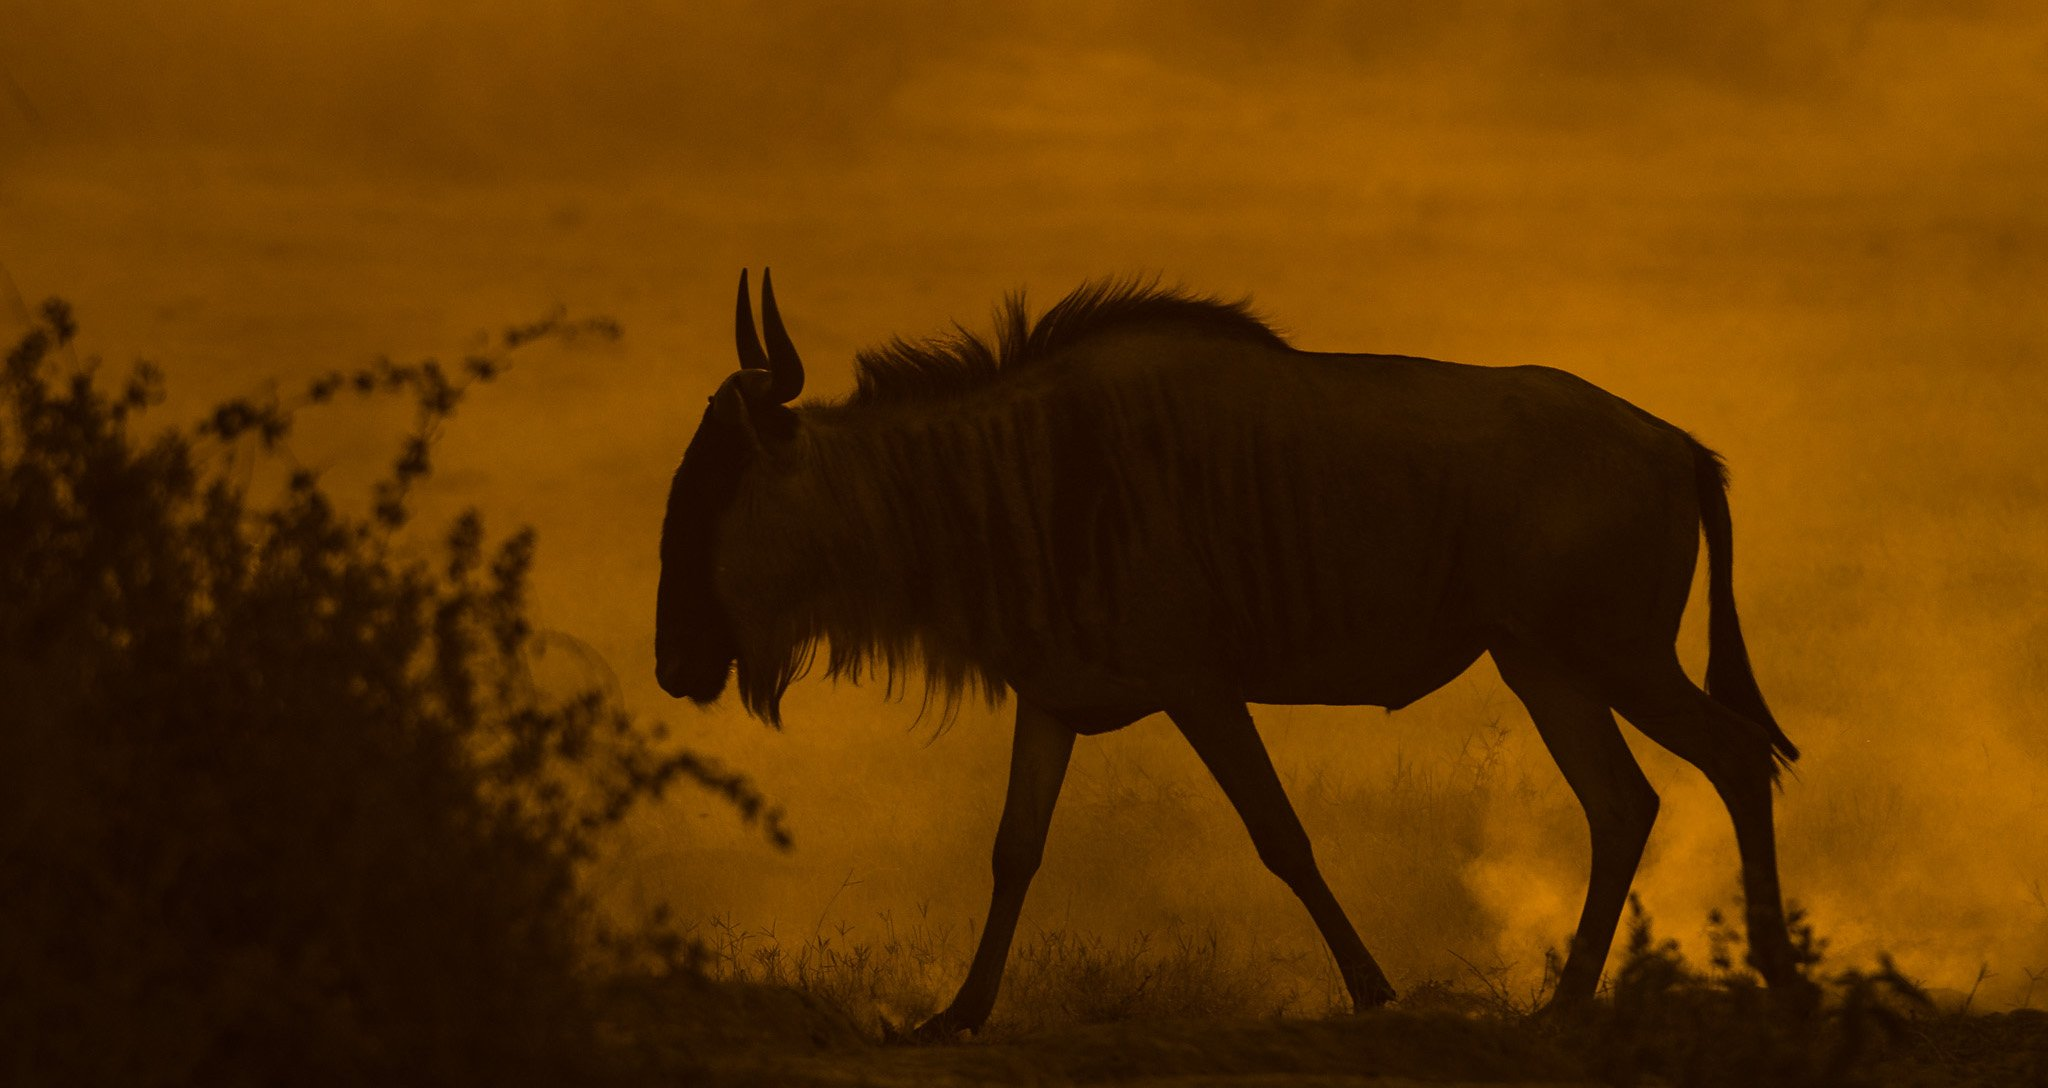 Wildebeest Silhouette blog featured image